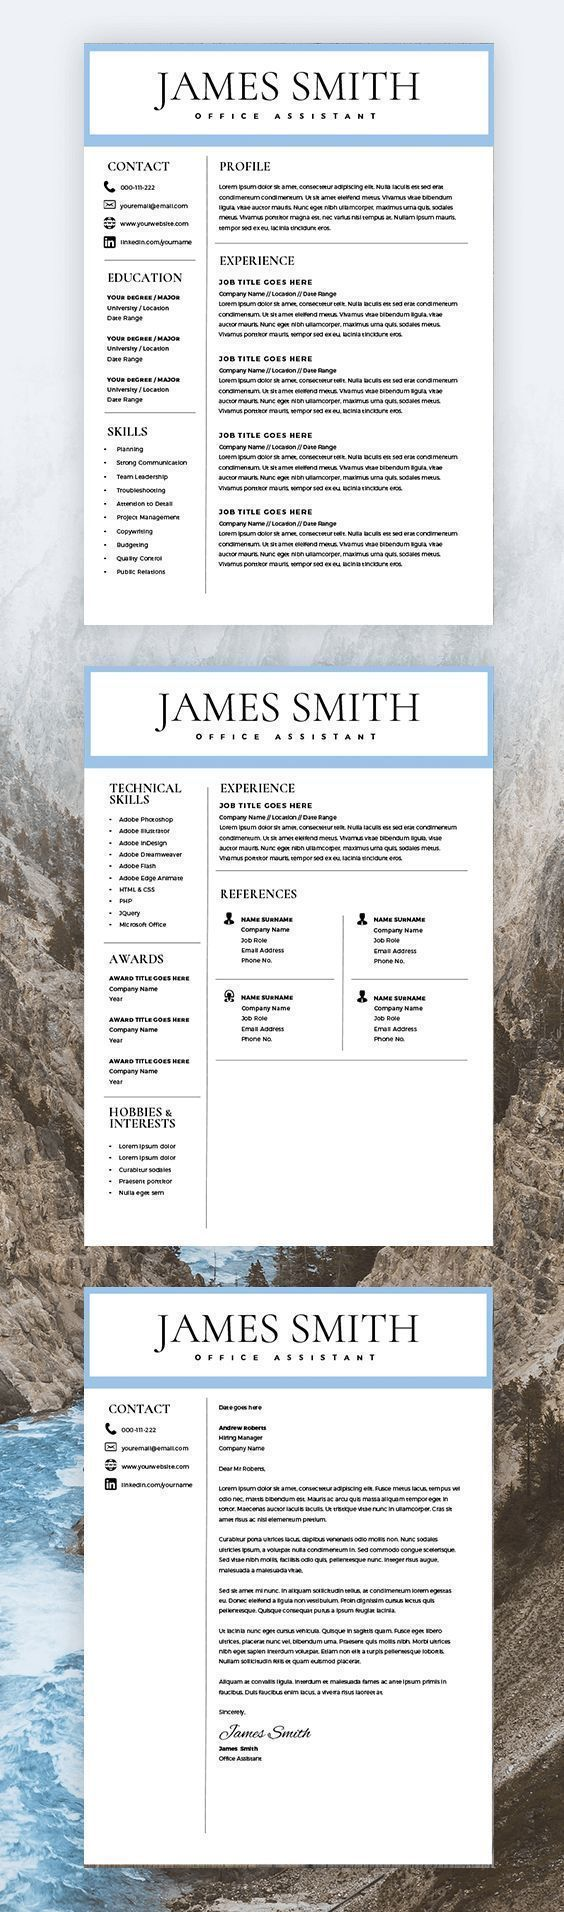 office assistant cover letter%0A Resume Template for Men  Writer Resume Template for Word  u     Pages    Pages  Resume